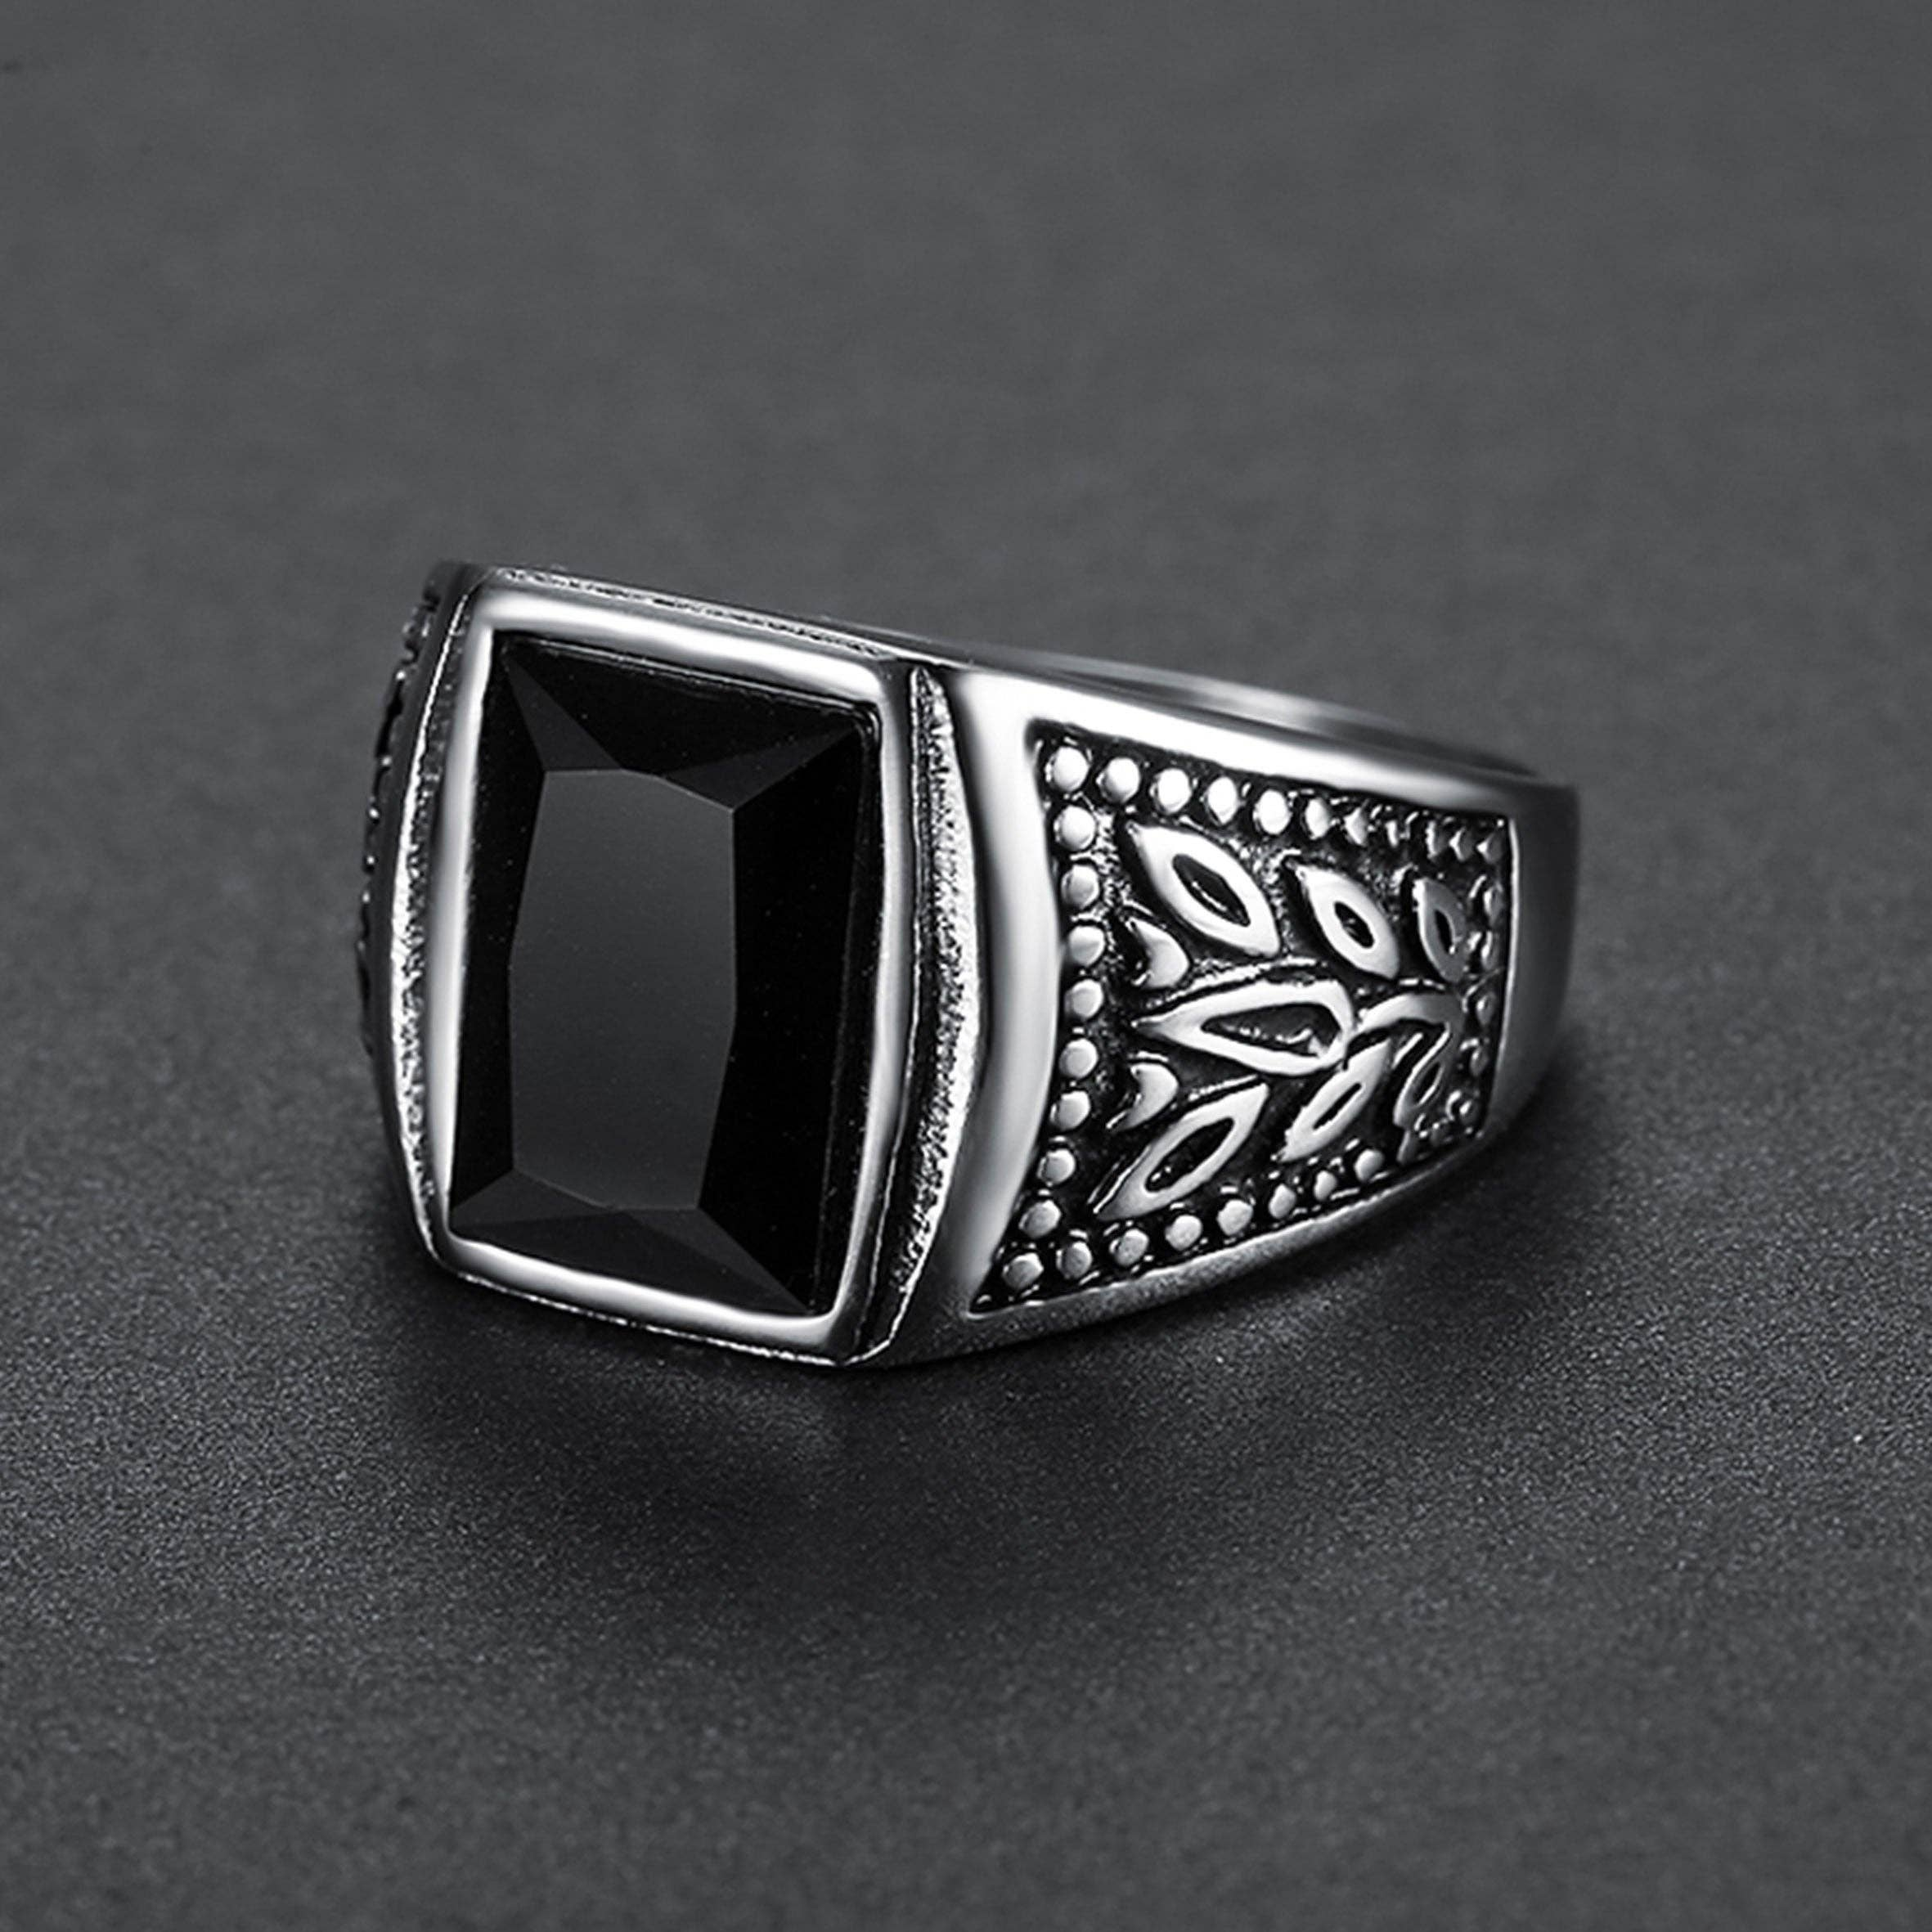 SEVEN50 Rectangular Signet Ring//Aged Signet Ring//Signet Ring//Gift for Him//Gift for Her//Mens Fashion Jewelry//Mens Jewelry//Ring